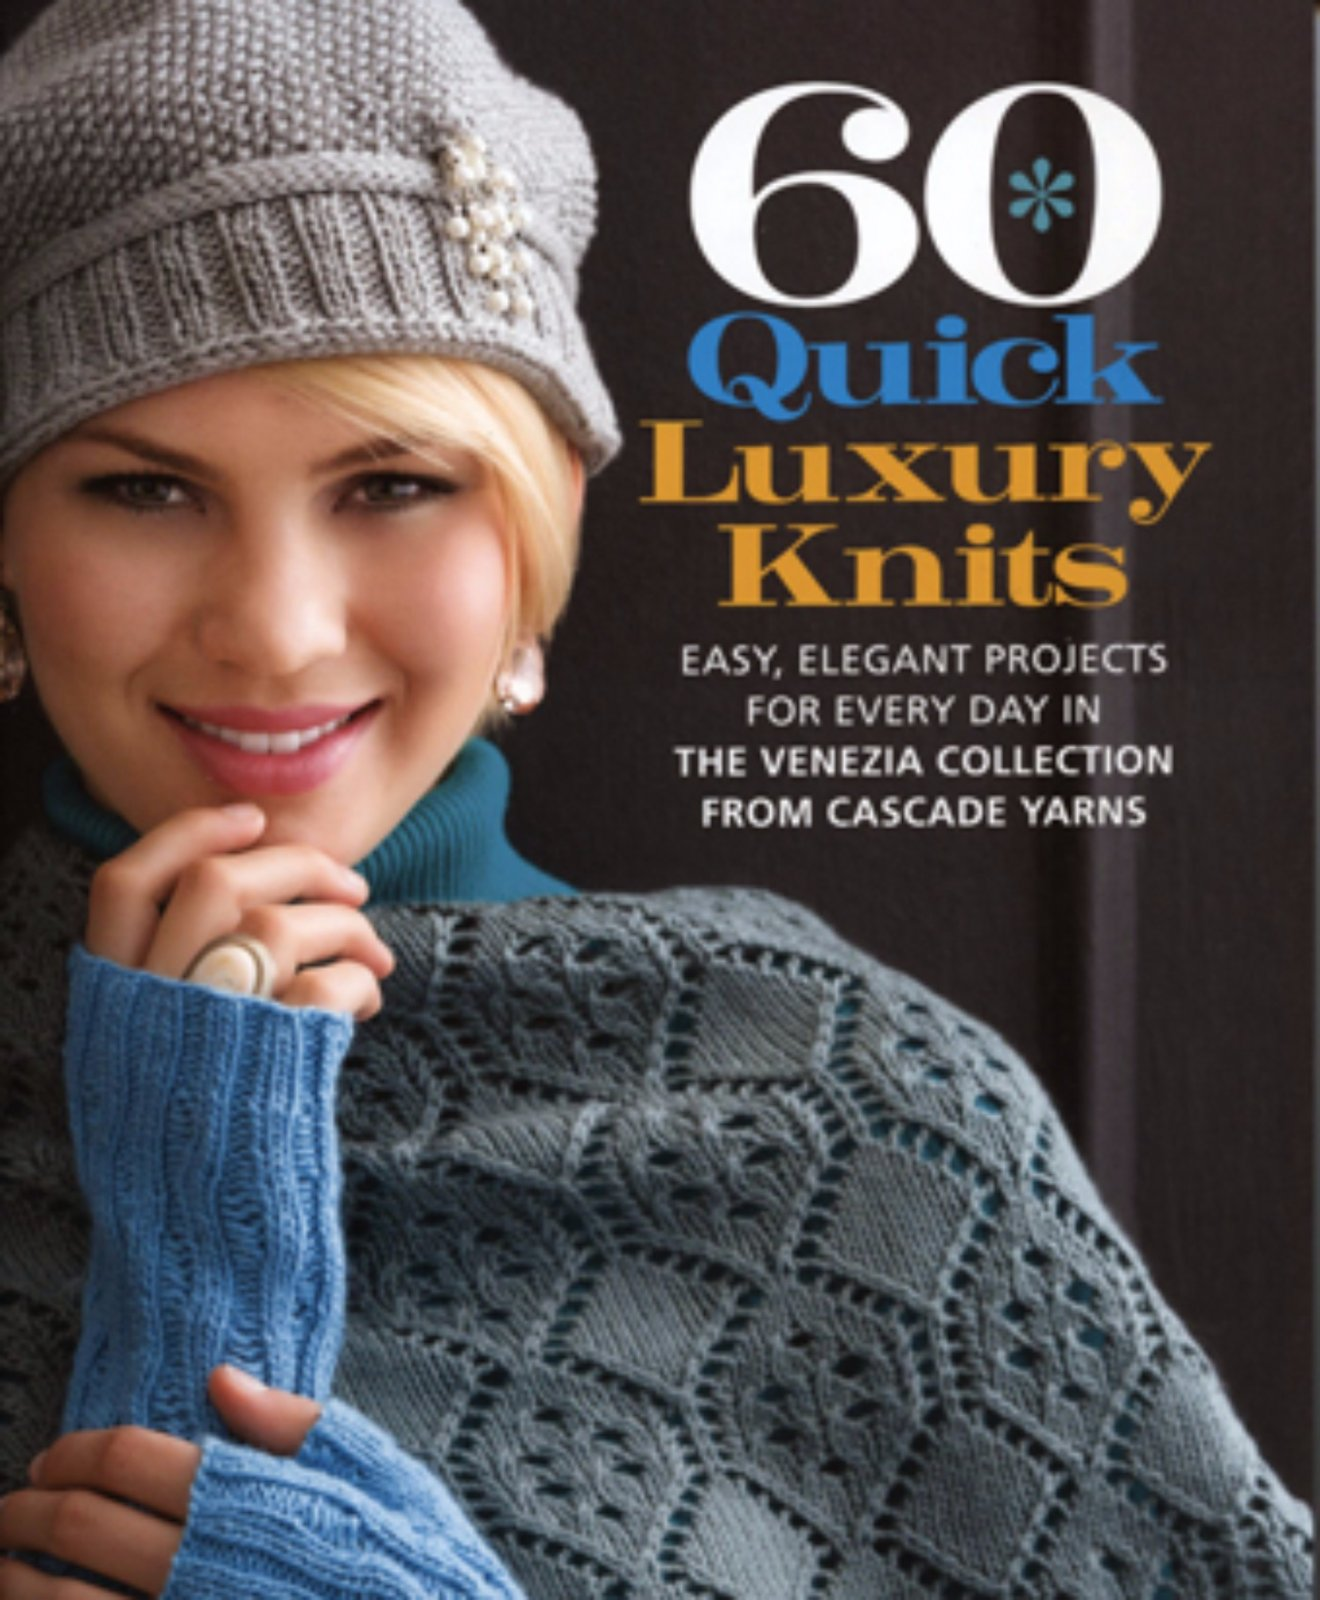 60 Quick Luxury Knits